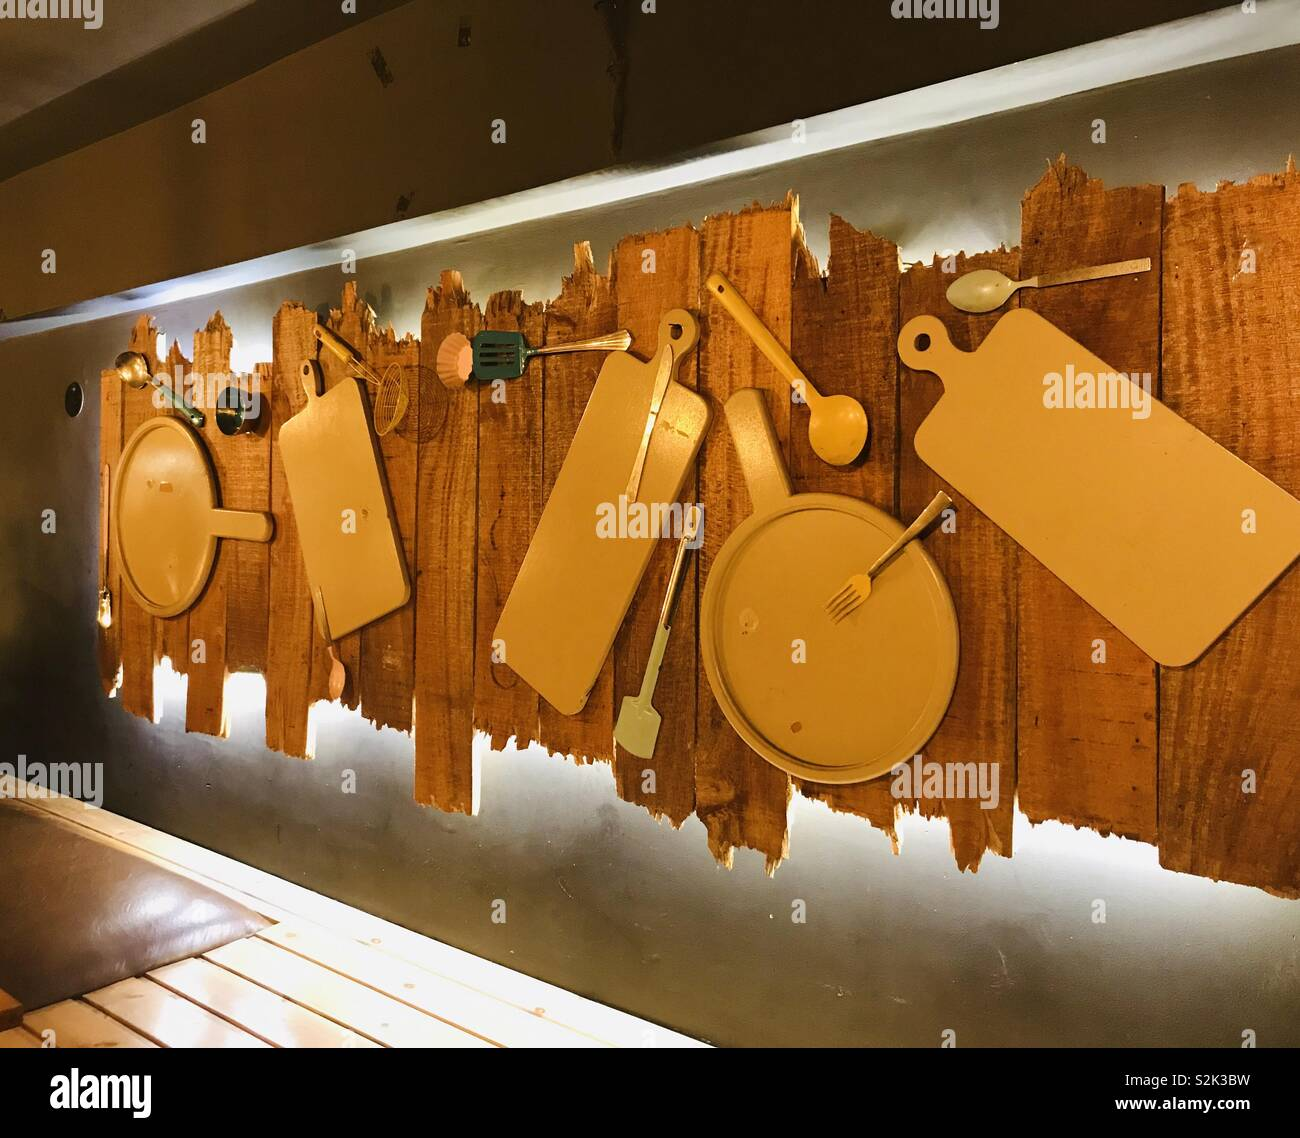 Wall piece decor with kitchen gadgets. - Stock Image